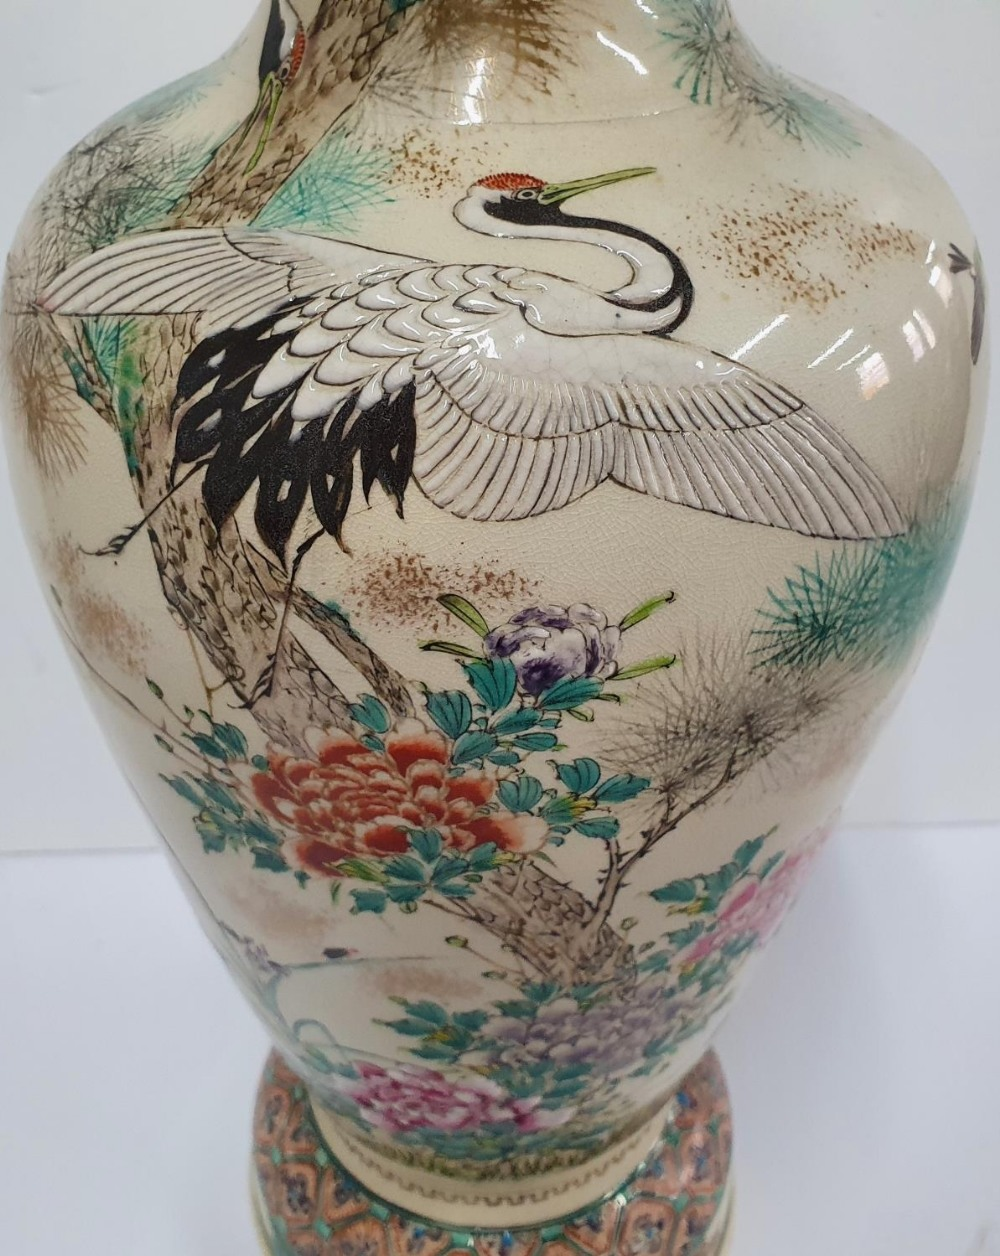 Large, Vintage, signed, Asian vase decorated with storks and foliage, 48 cm tall - Image 2 of 5